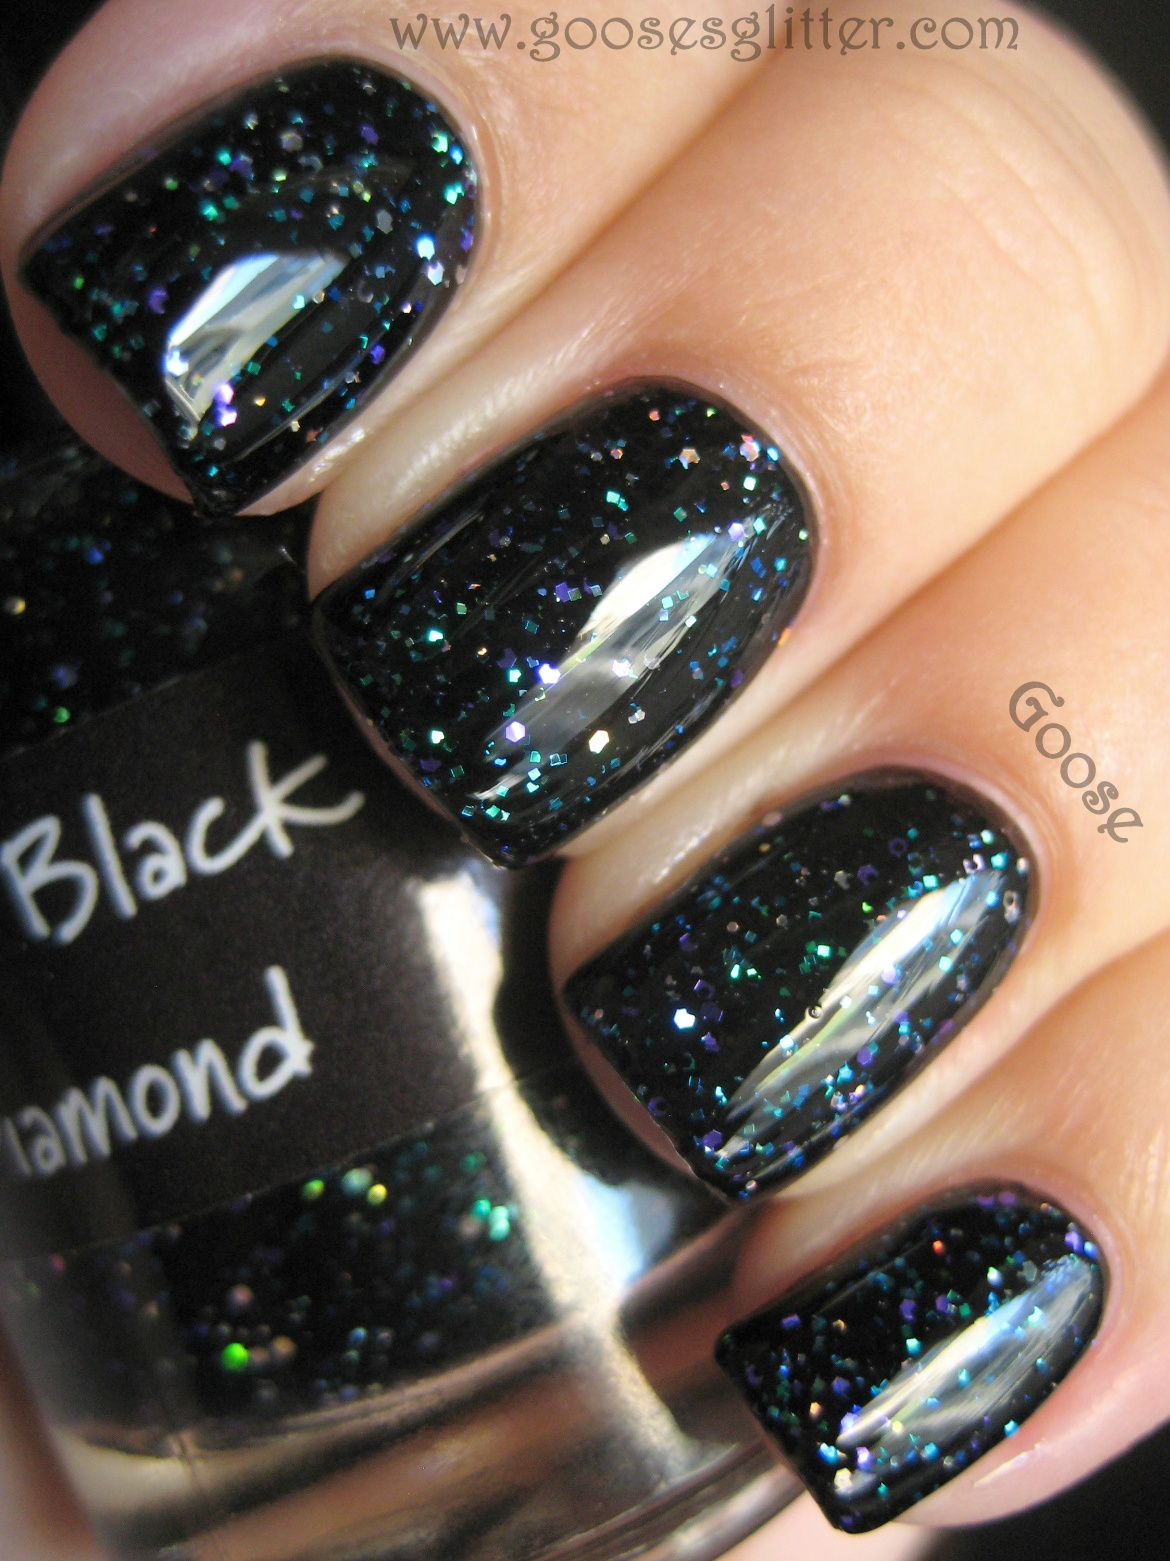 Goose\'s Glitter: CrowsToes - Triple Black Diamond: Swatches and Review